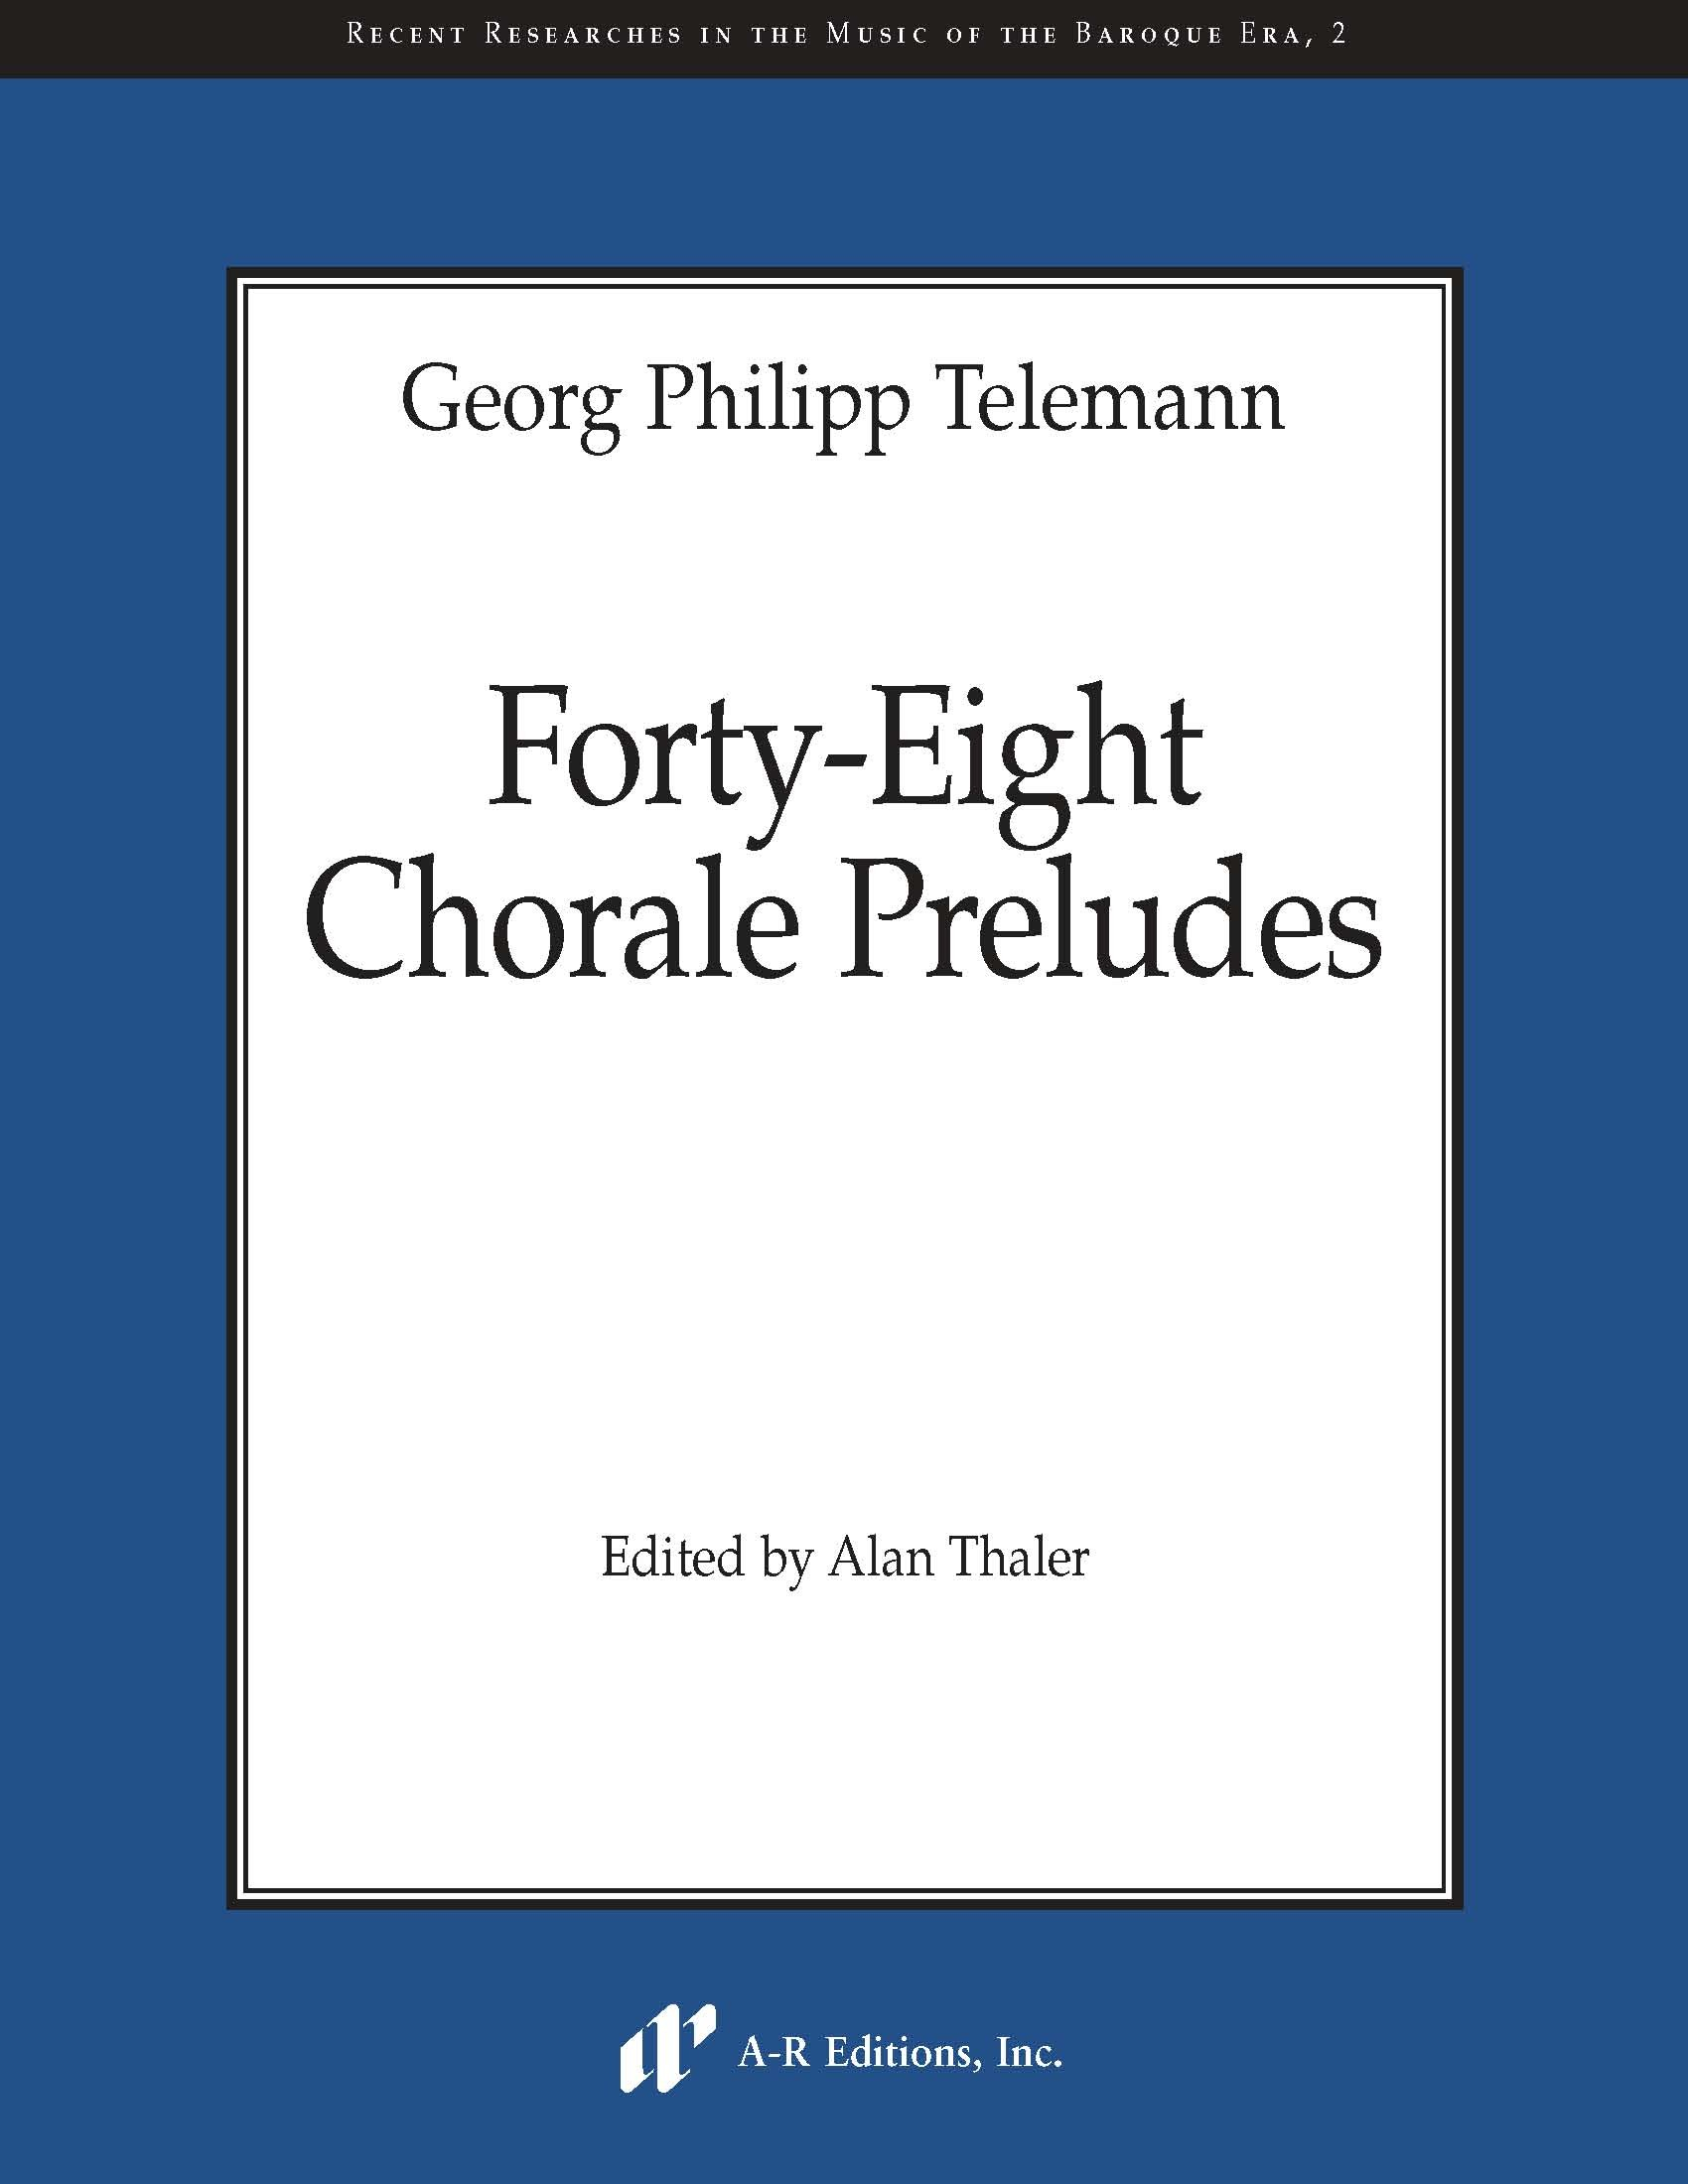 Telemann: Forty-Eight Chorale Preludes